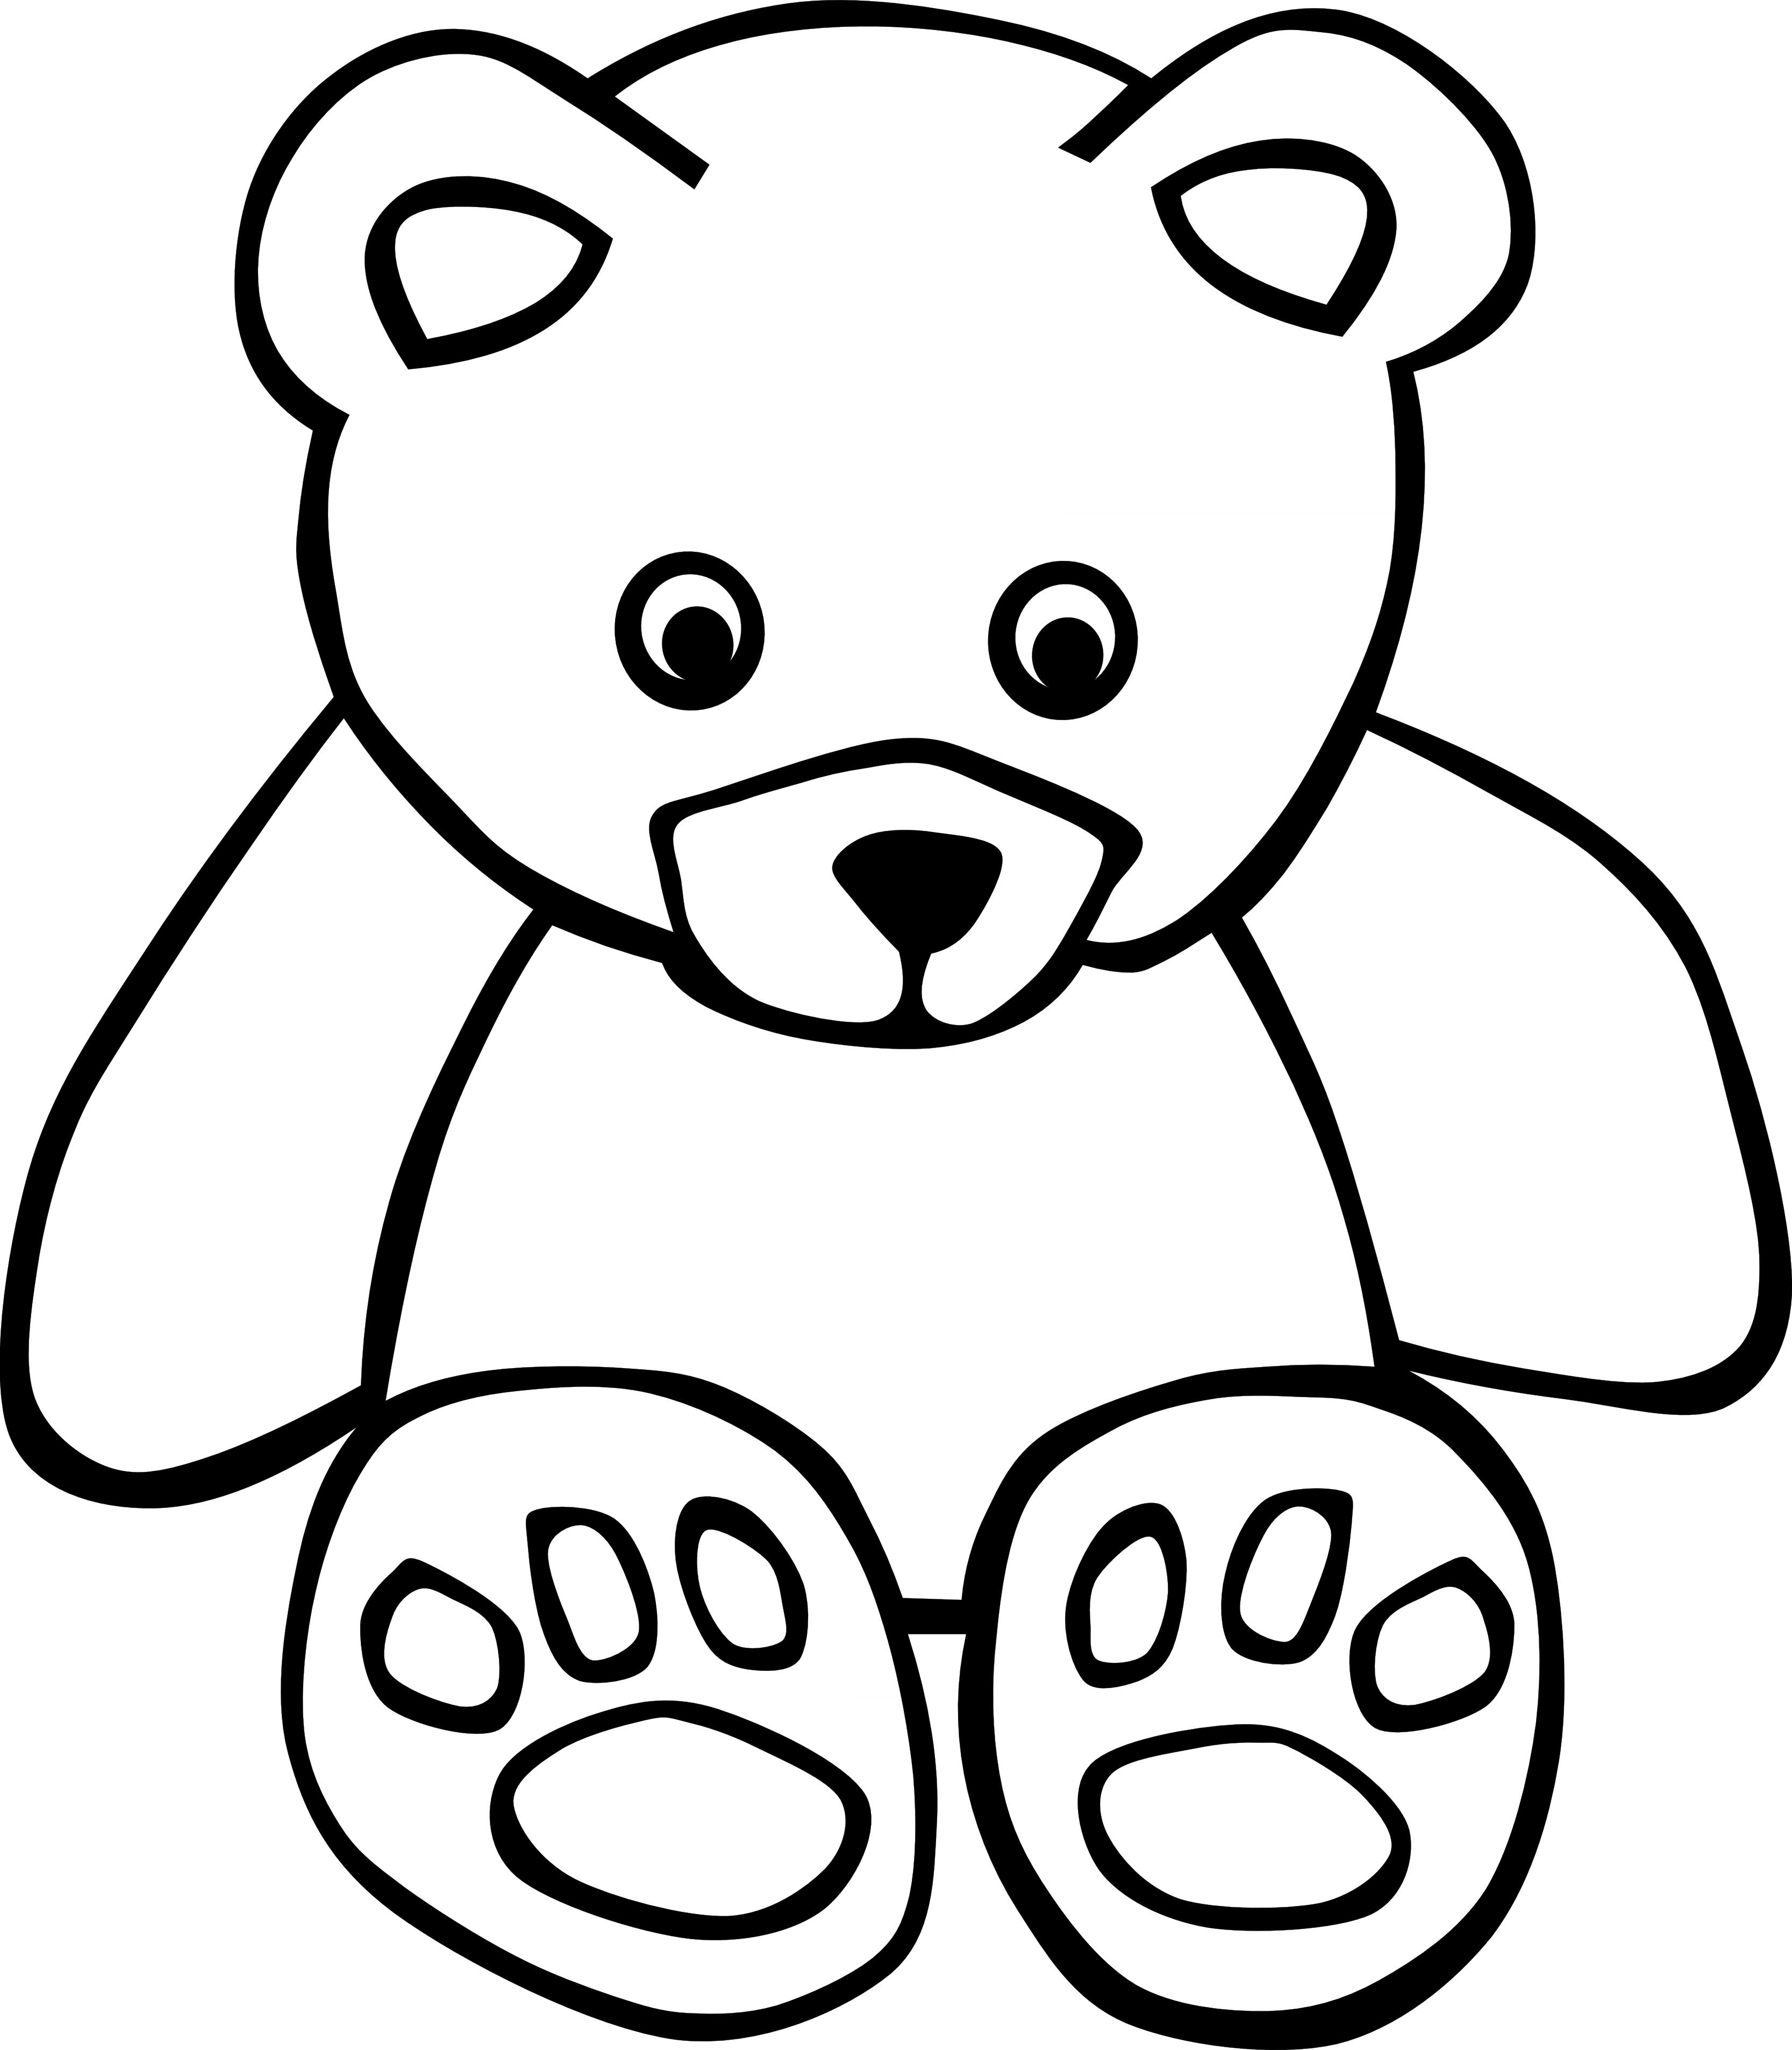 Stuffed animal bear clipart.